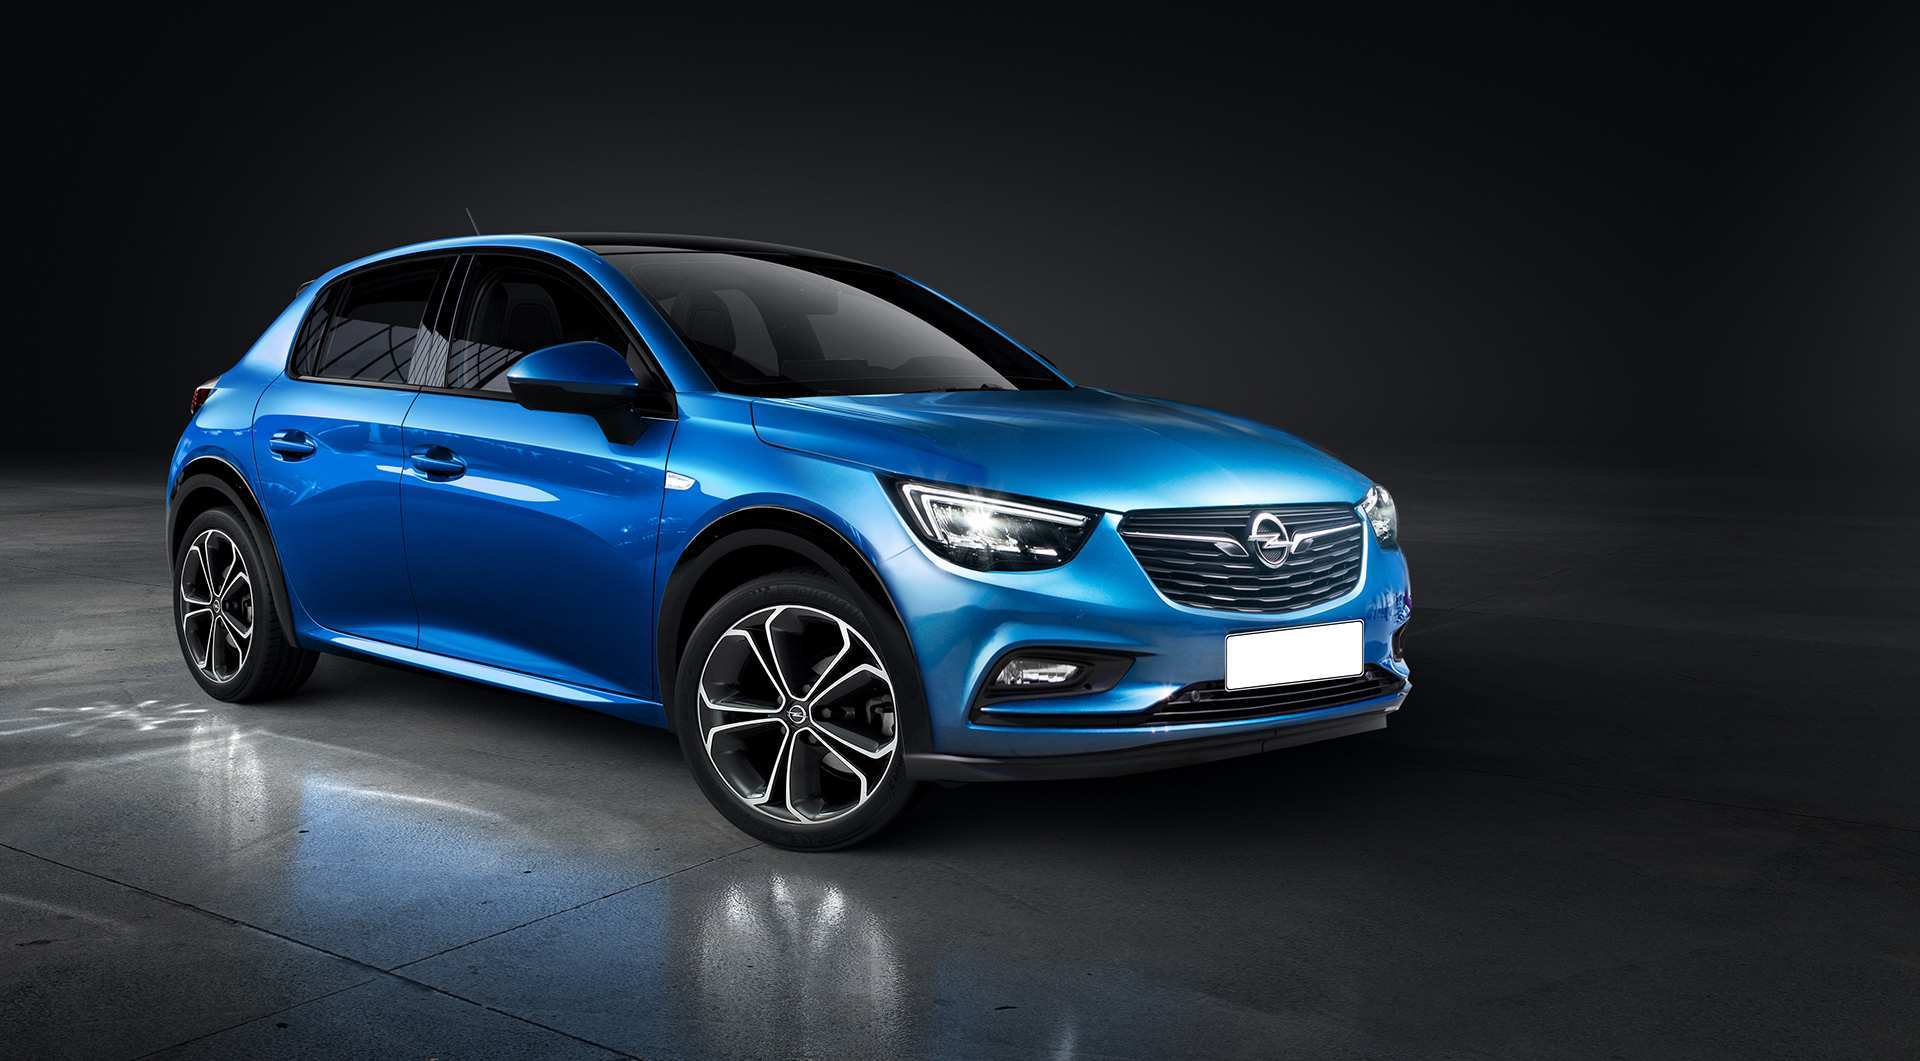 69 Gallery of Opel Astra Gsi 2020 Images for Opel Astra Gsi 2020